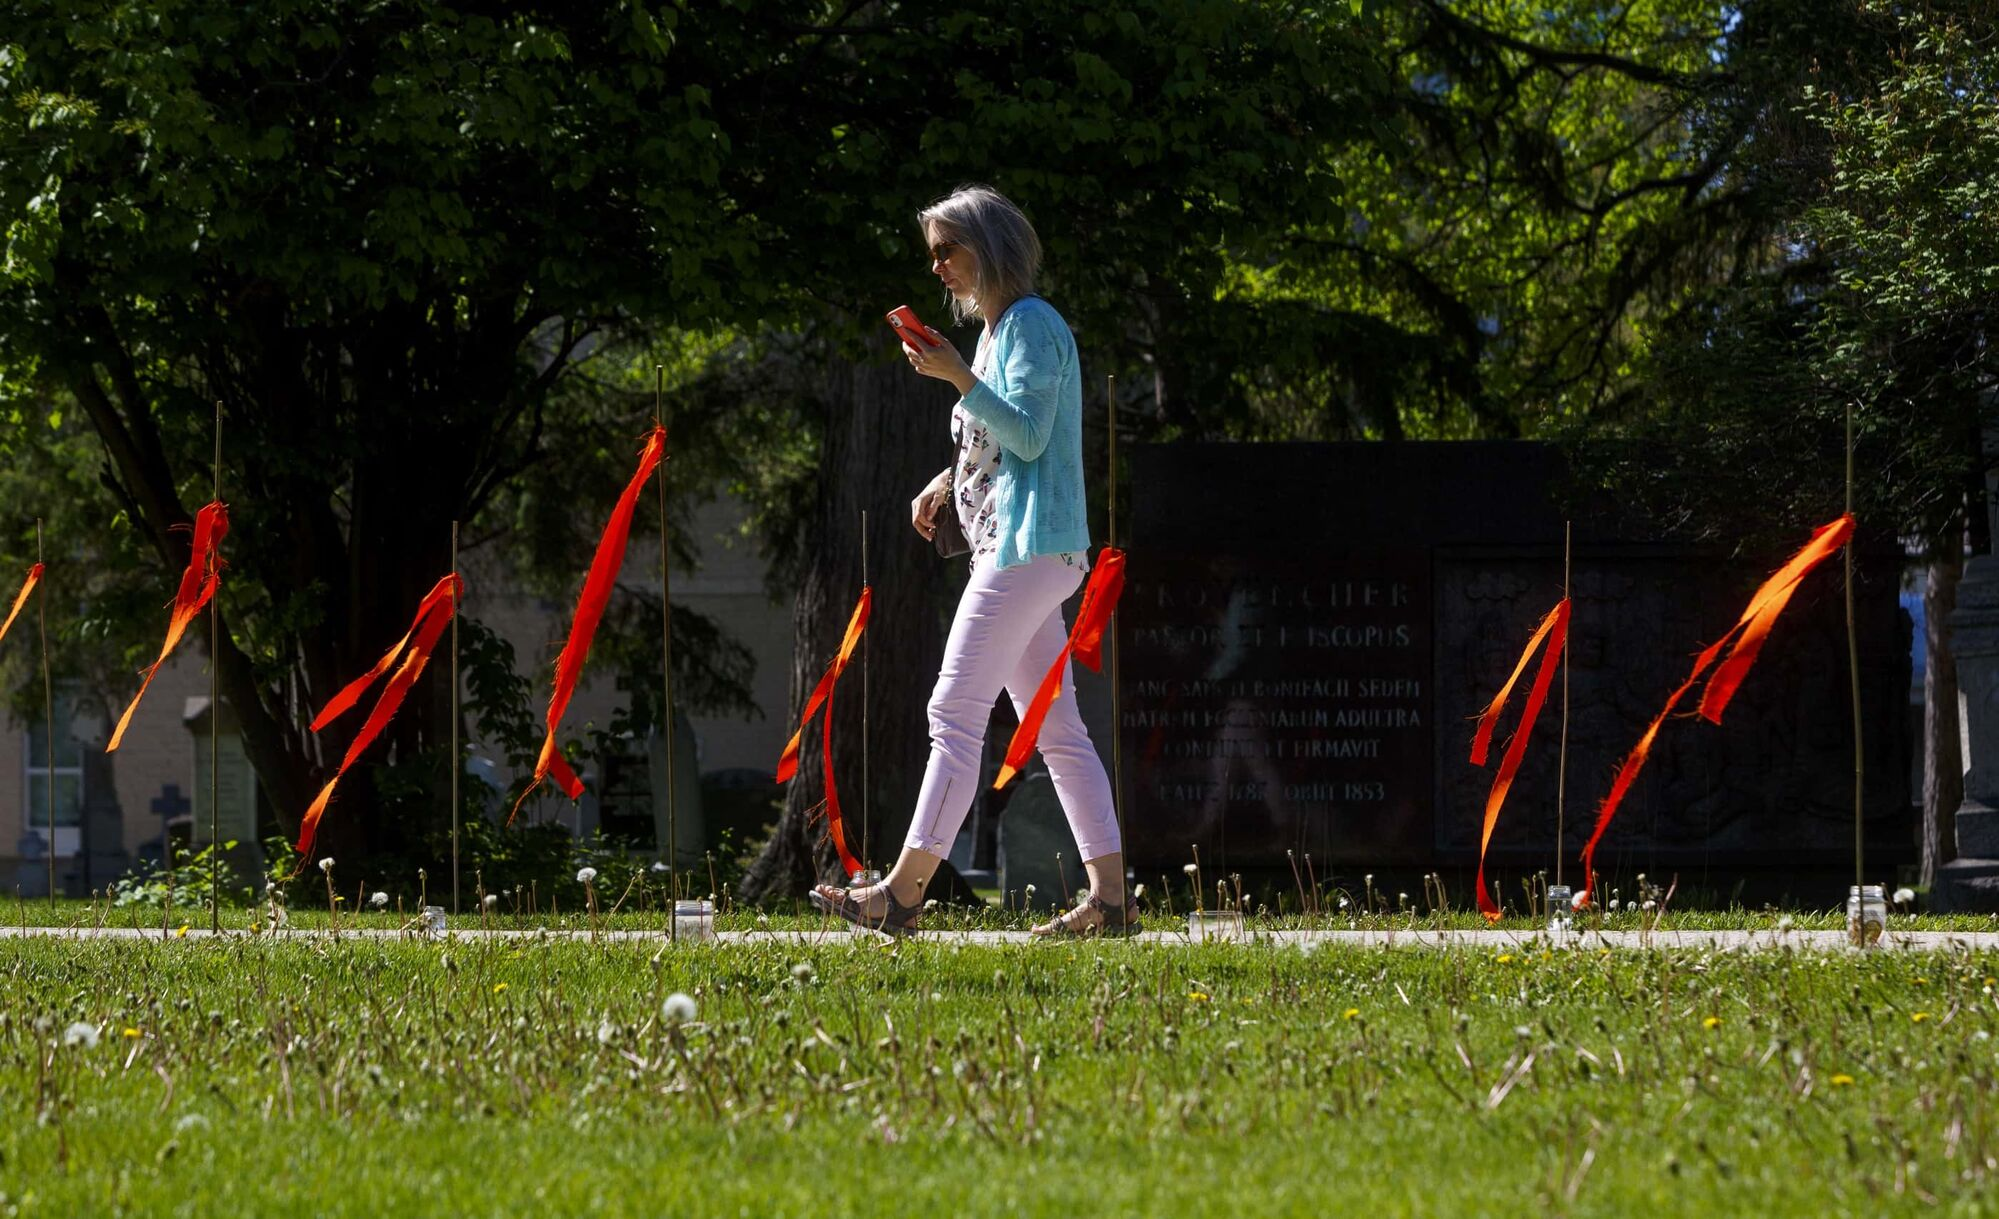 215 orange ribbons line the path to the old St. Boniface Cathedral, a memorial to the 215 children recently found buried in an unmarked gravesite at the former Kamloops Indian Residential School in B.C. (Mike Deal / Winnipeg Free Press files)